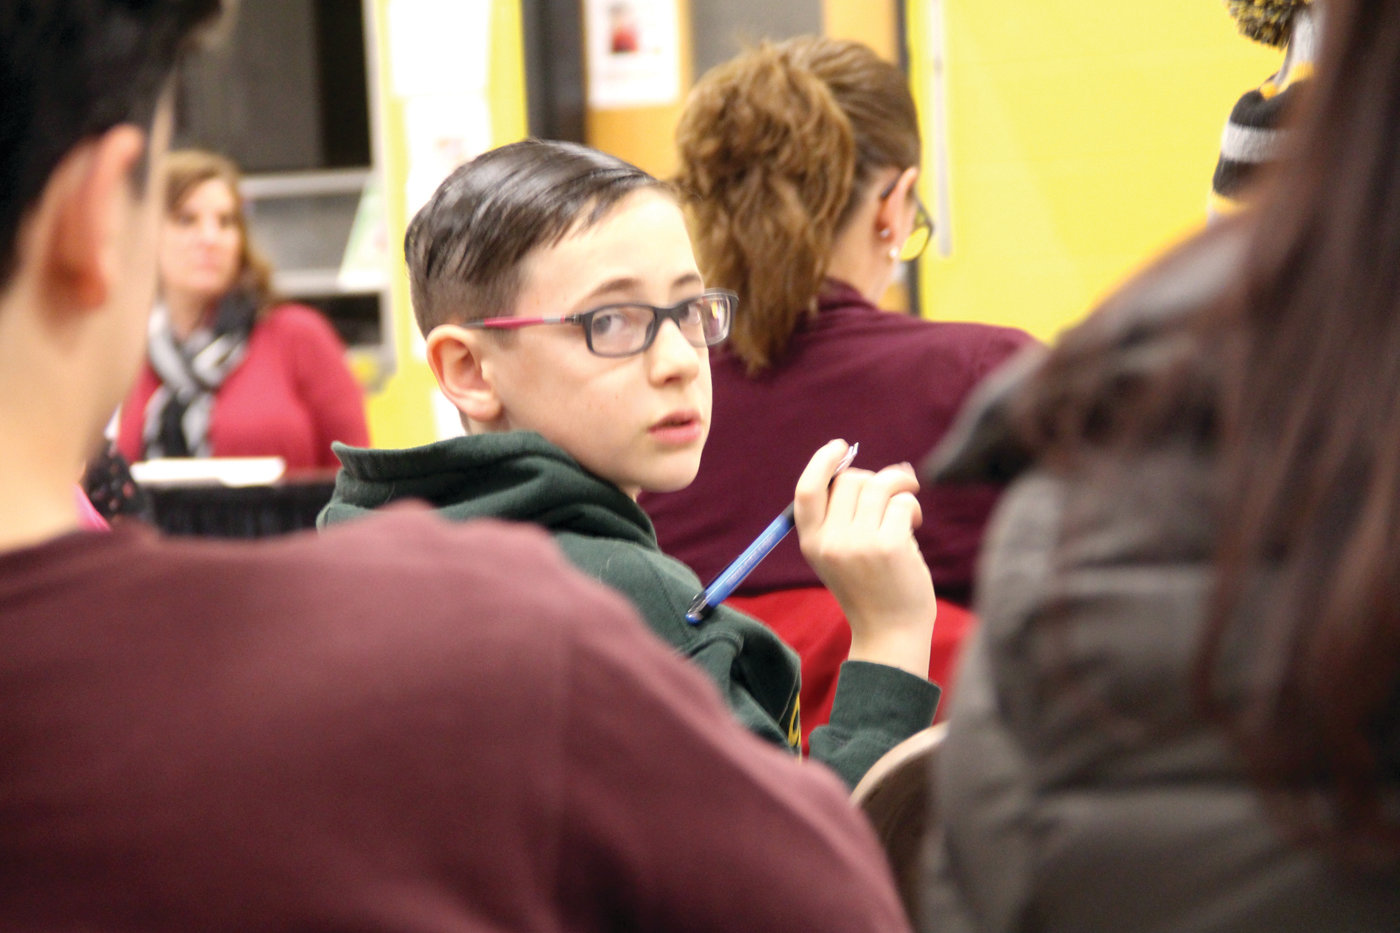 IT'S HIS FUTURE: Fourth-grader Sean Dolan was among about a dozen Chester W. Barrows Elementary School students who attended a January meeting focused on the administration's recommendation to close the school.